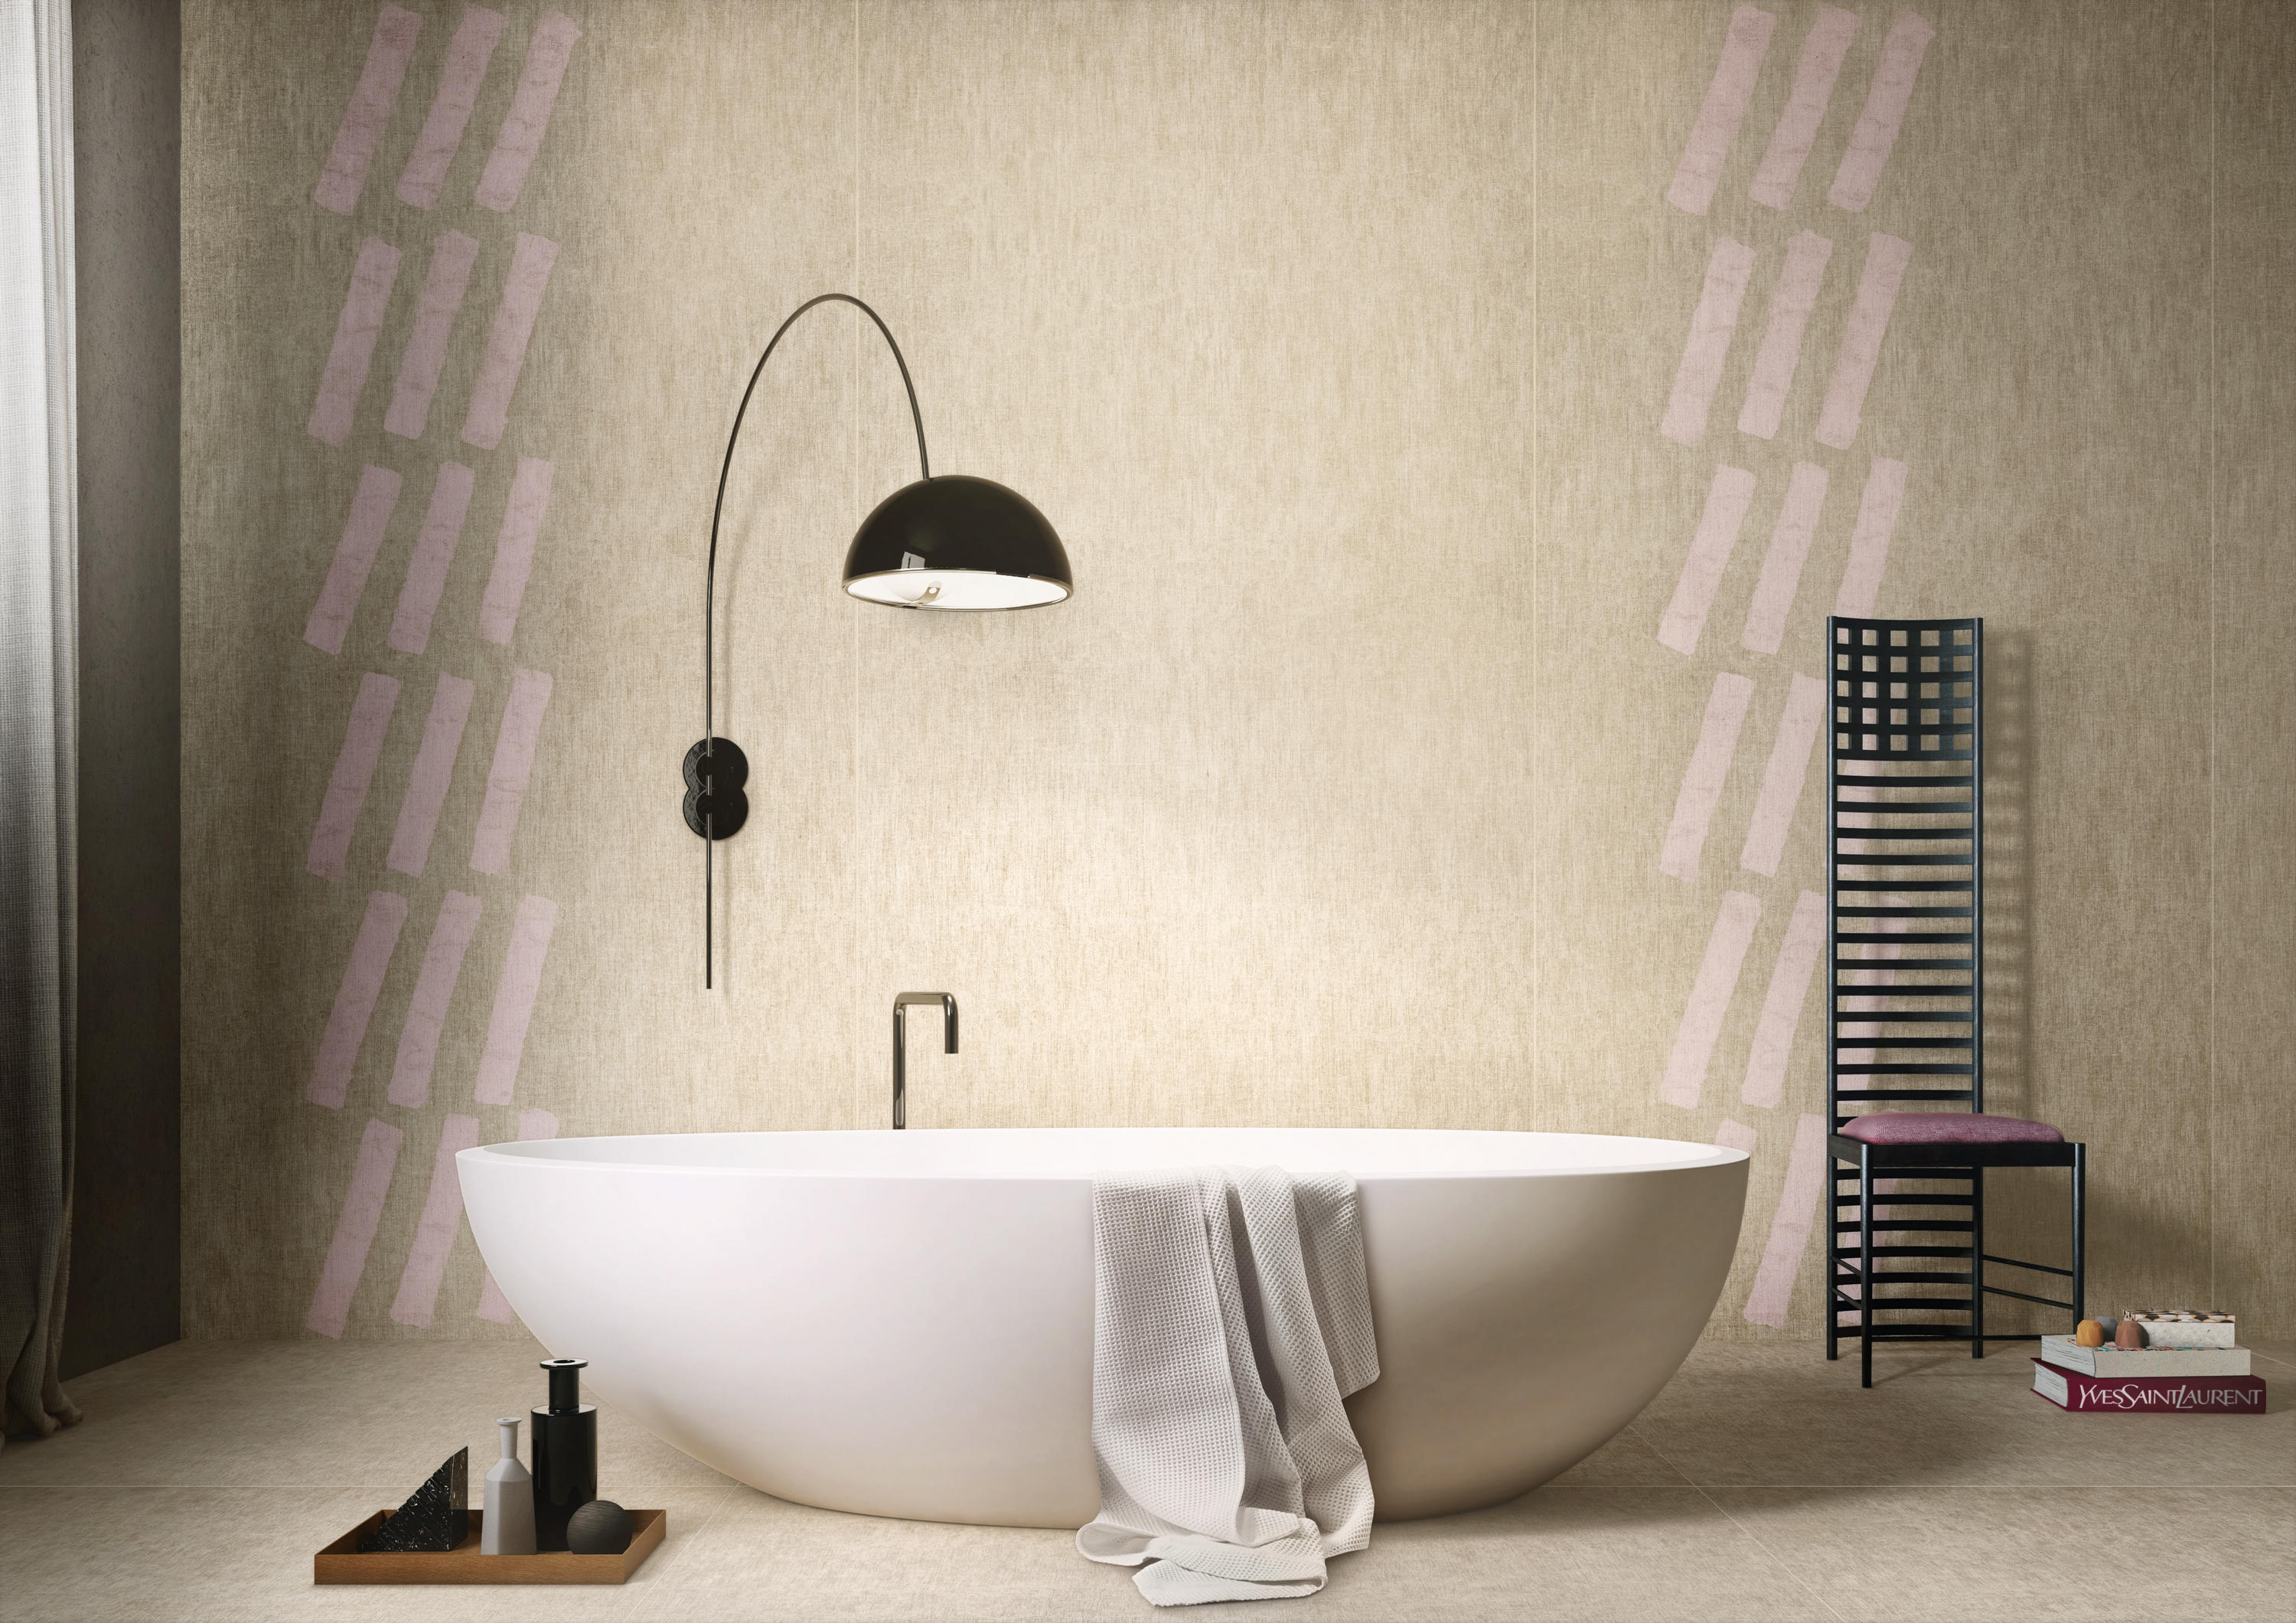 Euridice Discendente Ceramic Tiles From Cedit By Florim